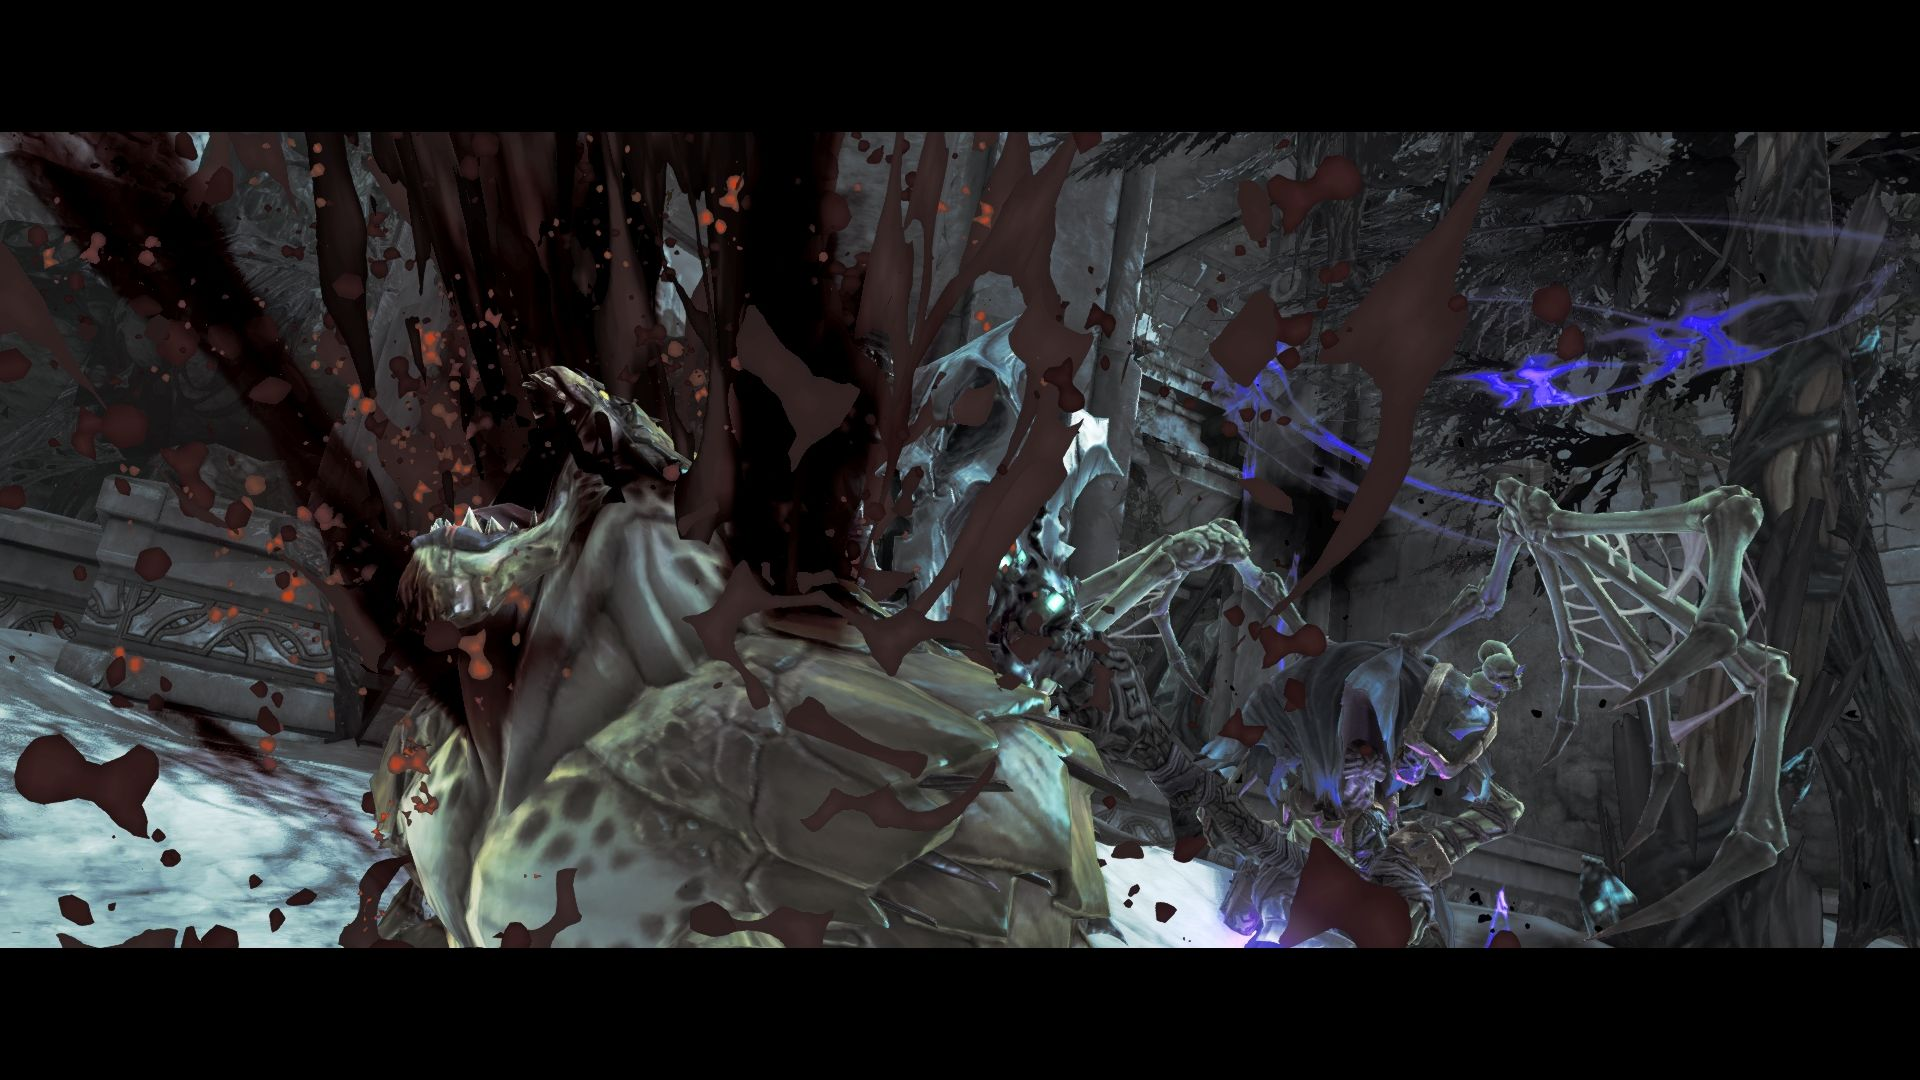 Darksiders II Windows Monster finishing in Death's true form.